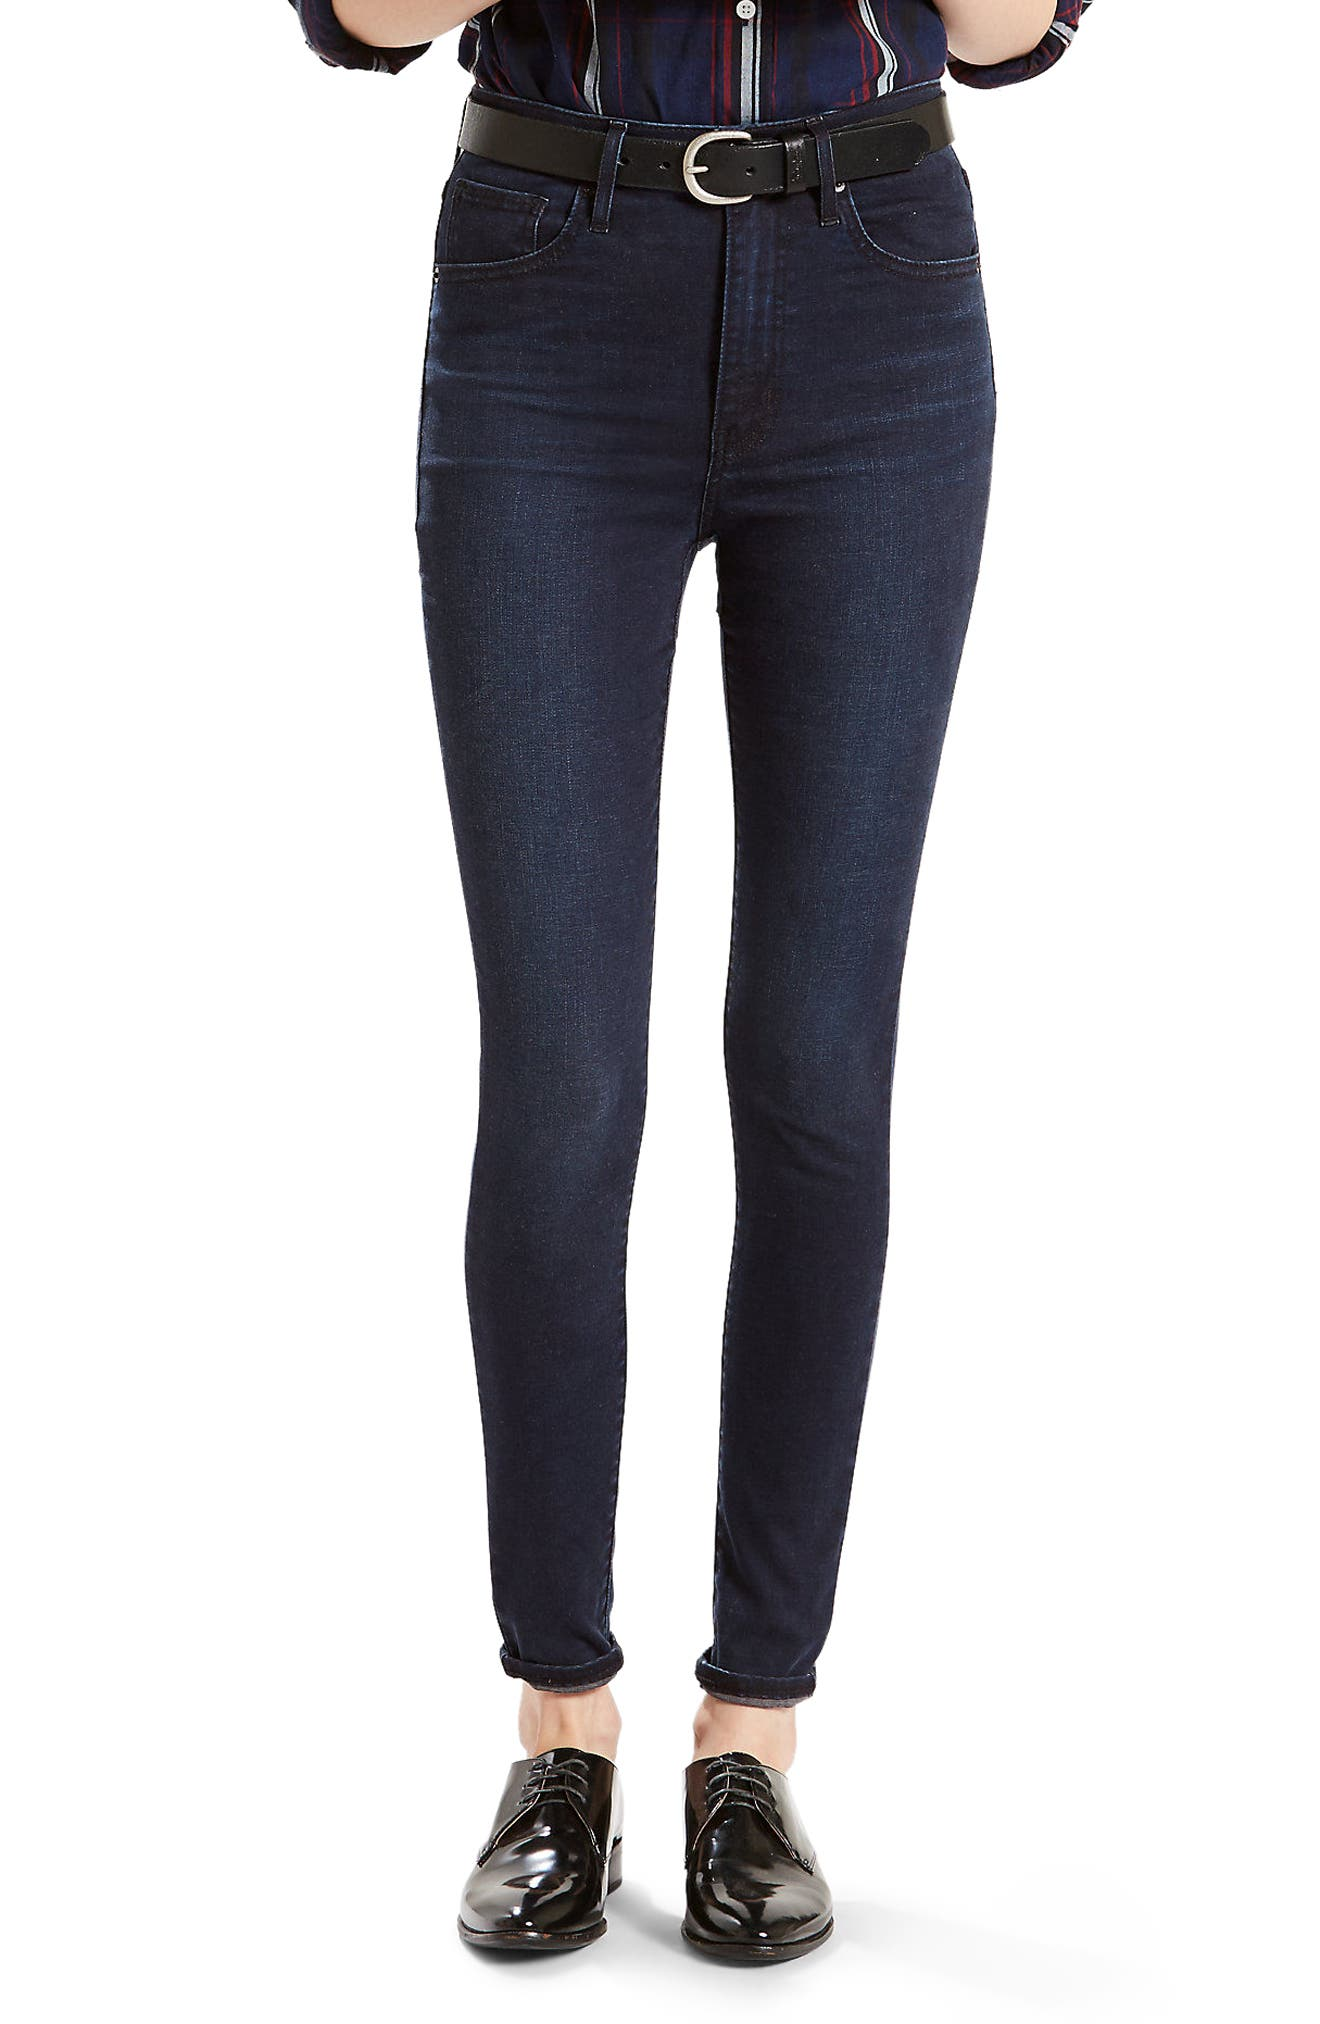 Mile High High Waist Super Skinny Jeans,                         Main,                         color, 420